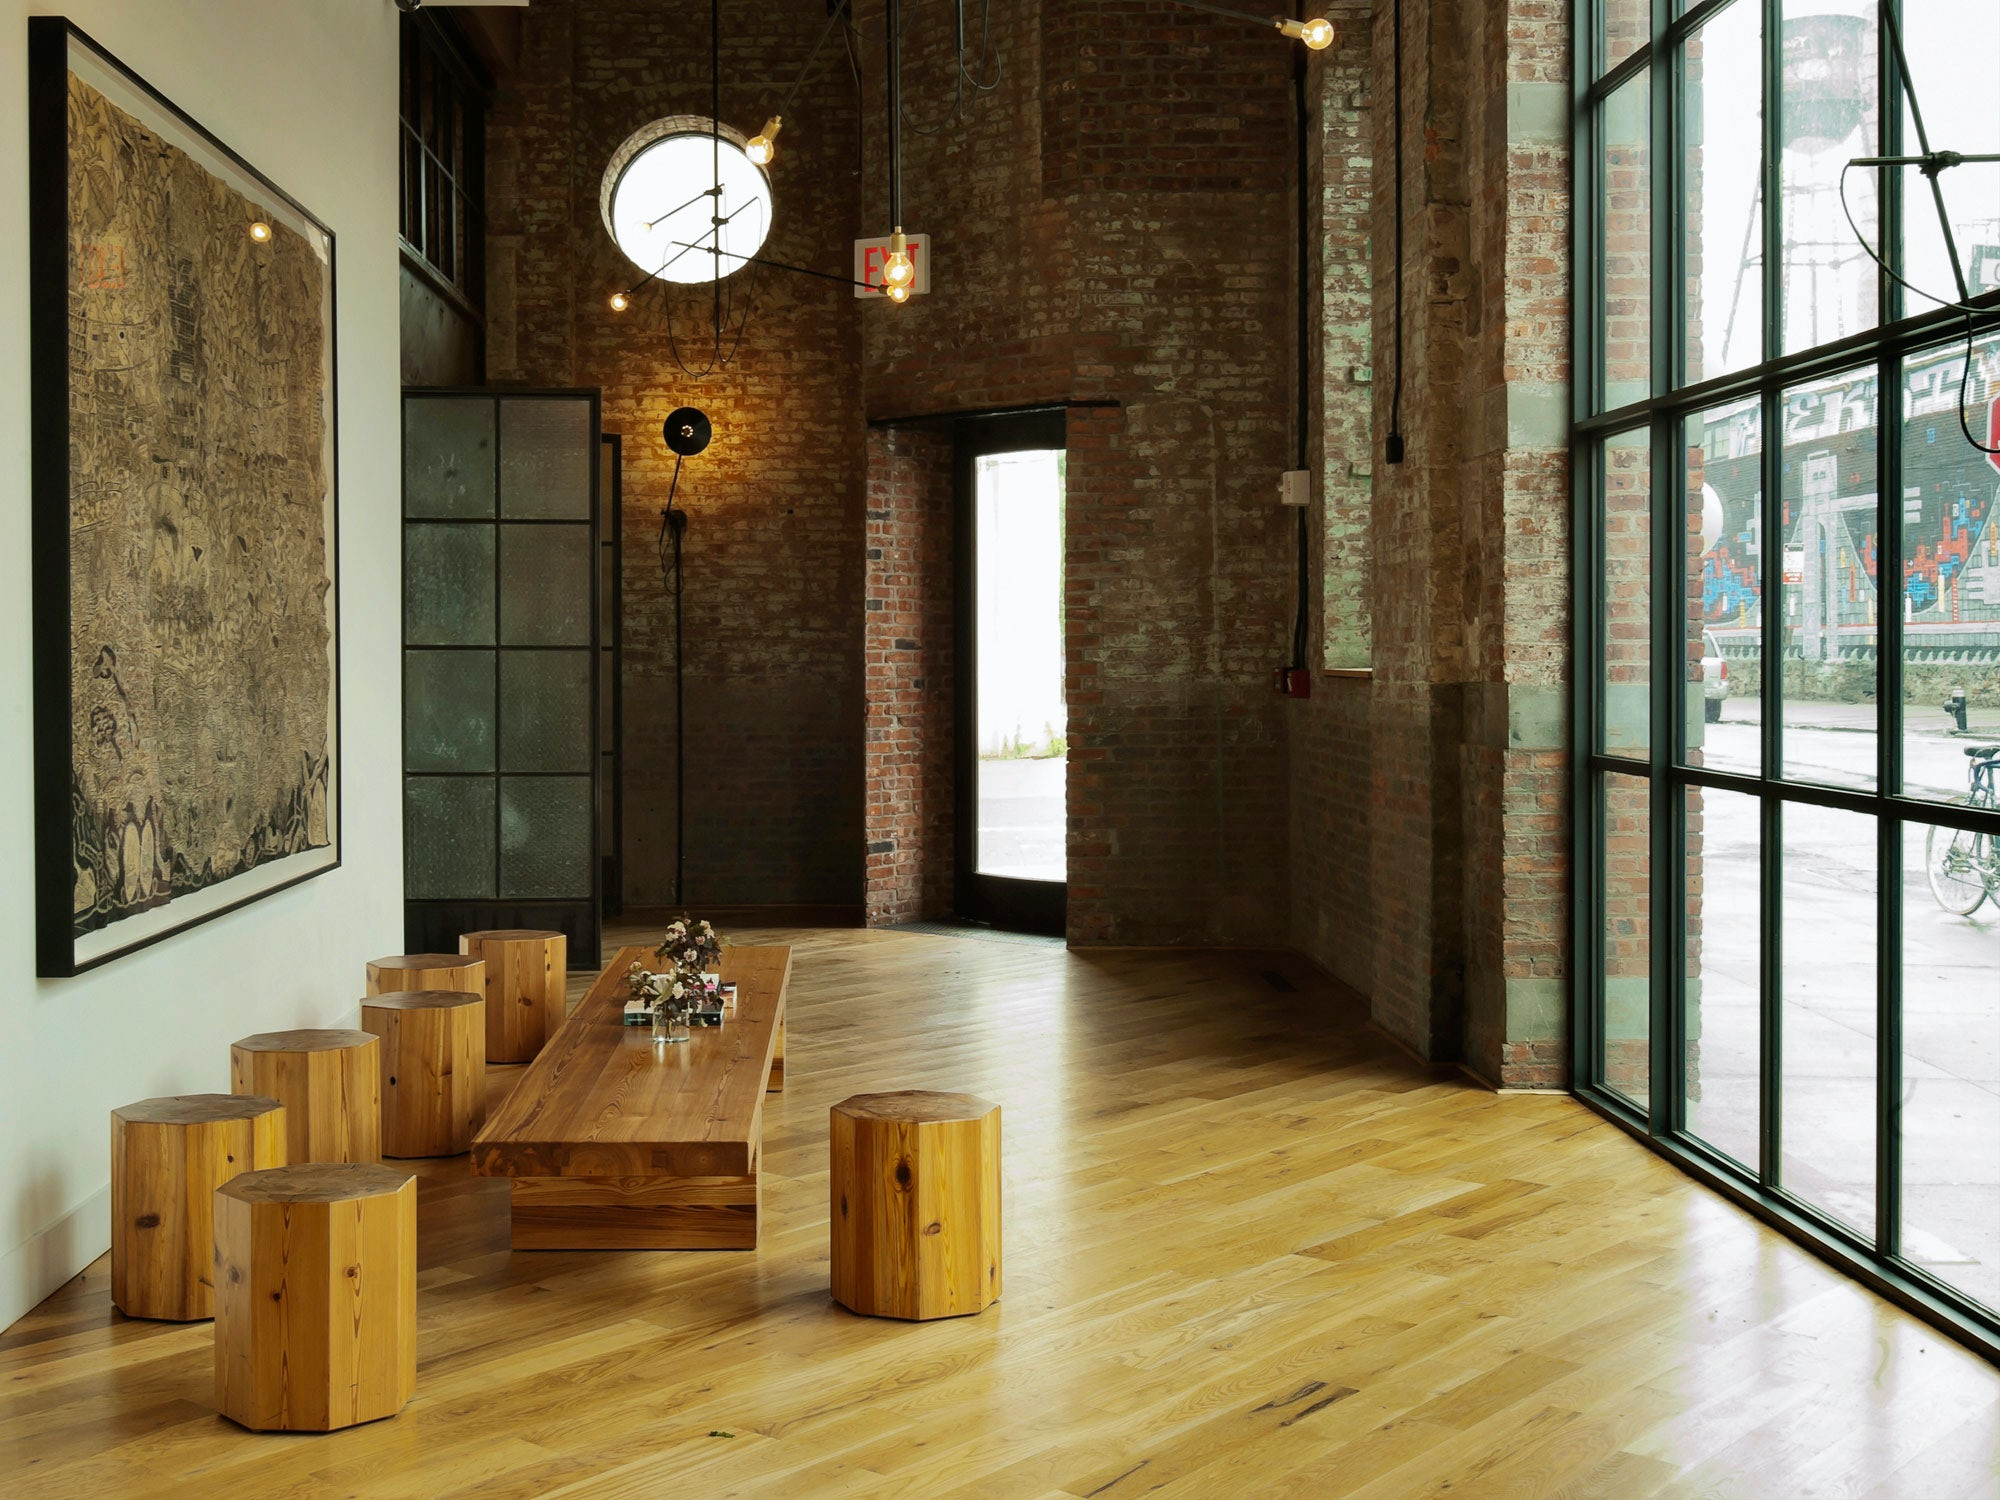 gallery image for The Wythe Hotel Lobby